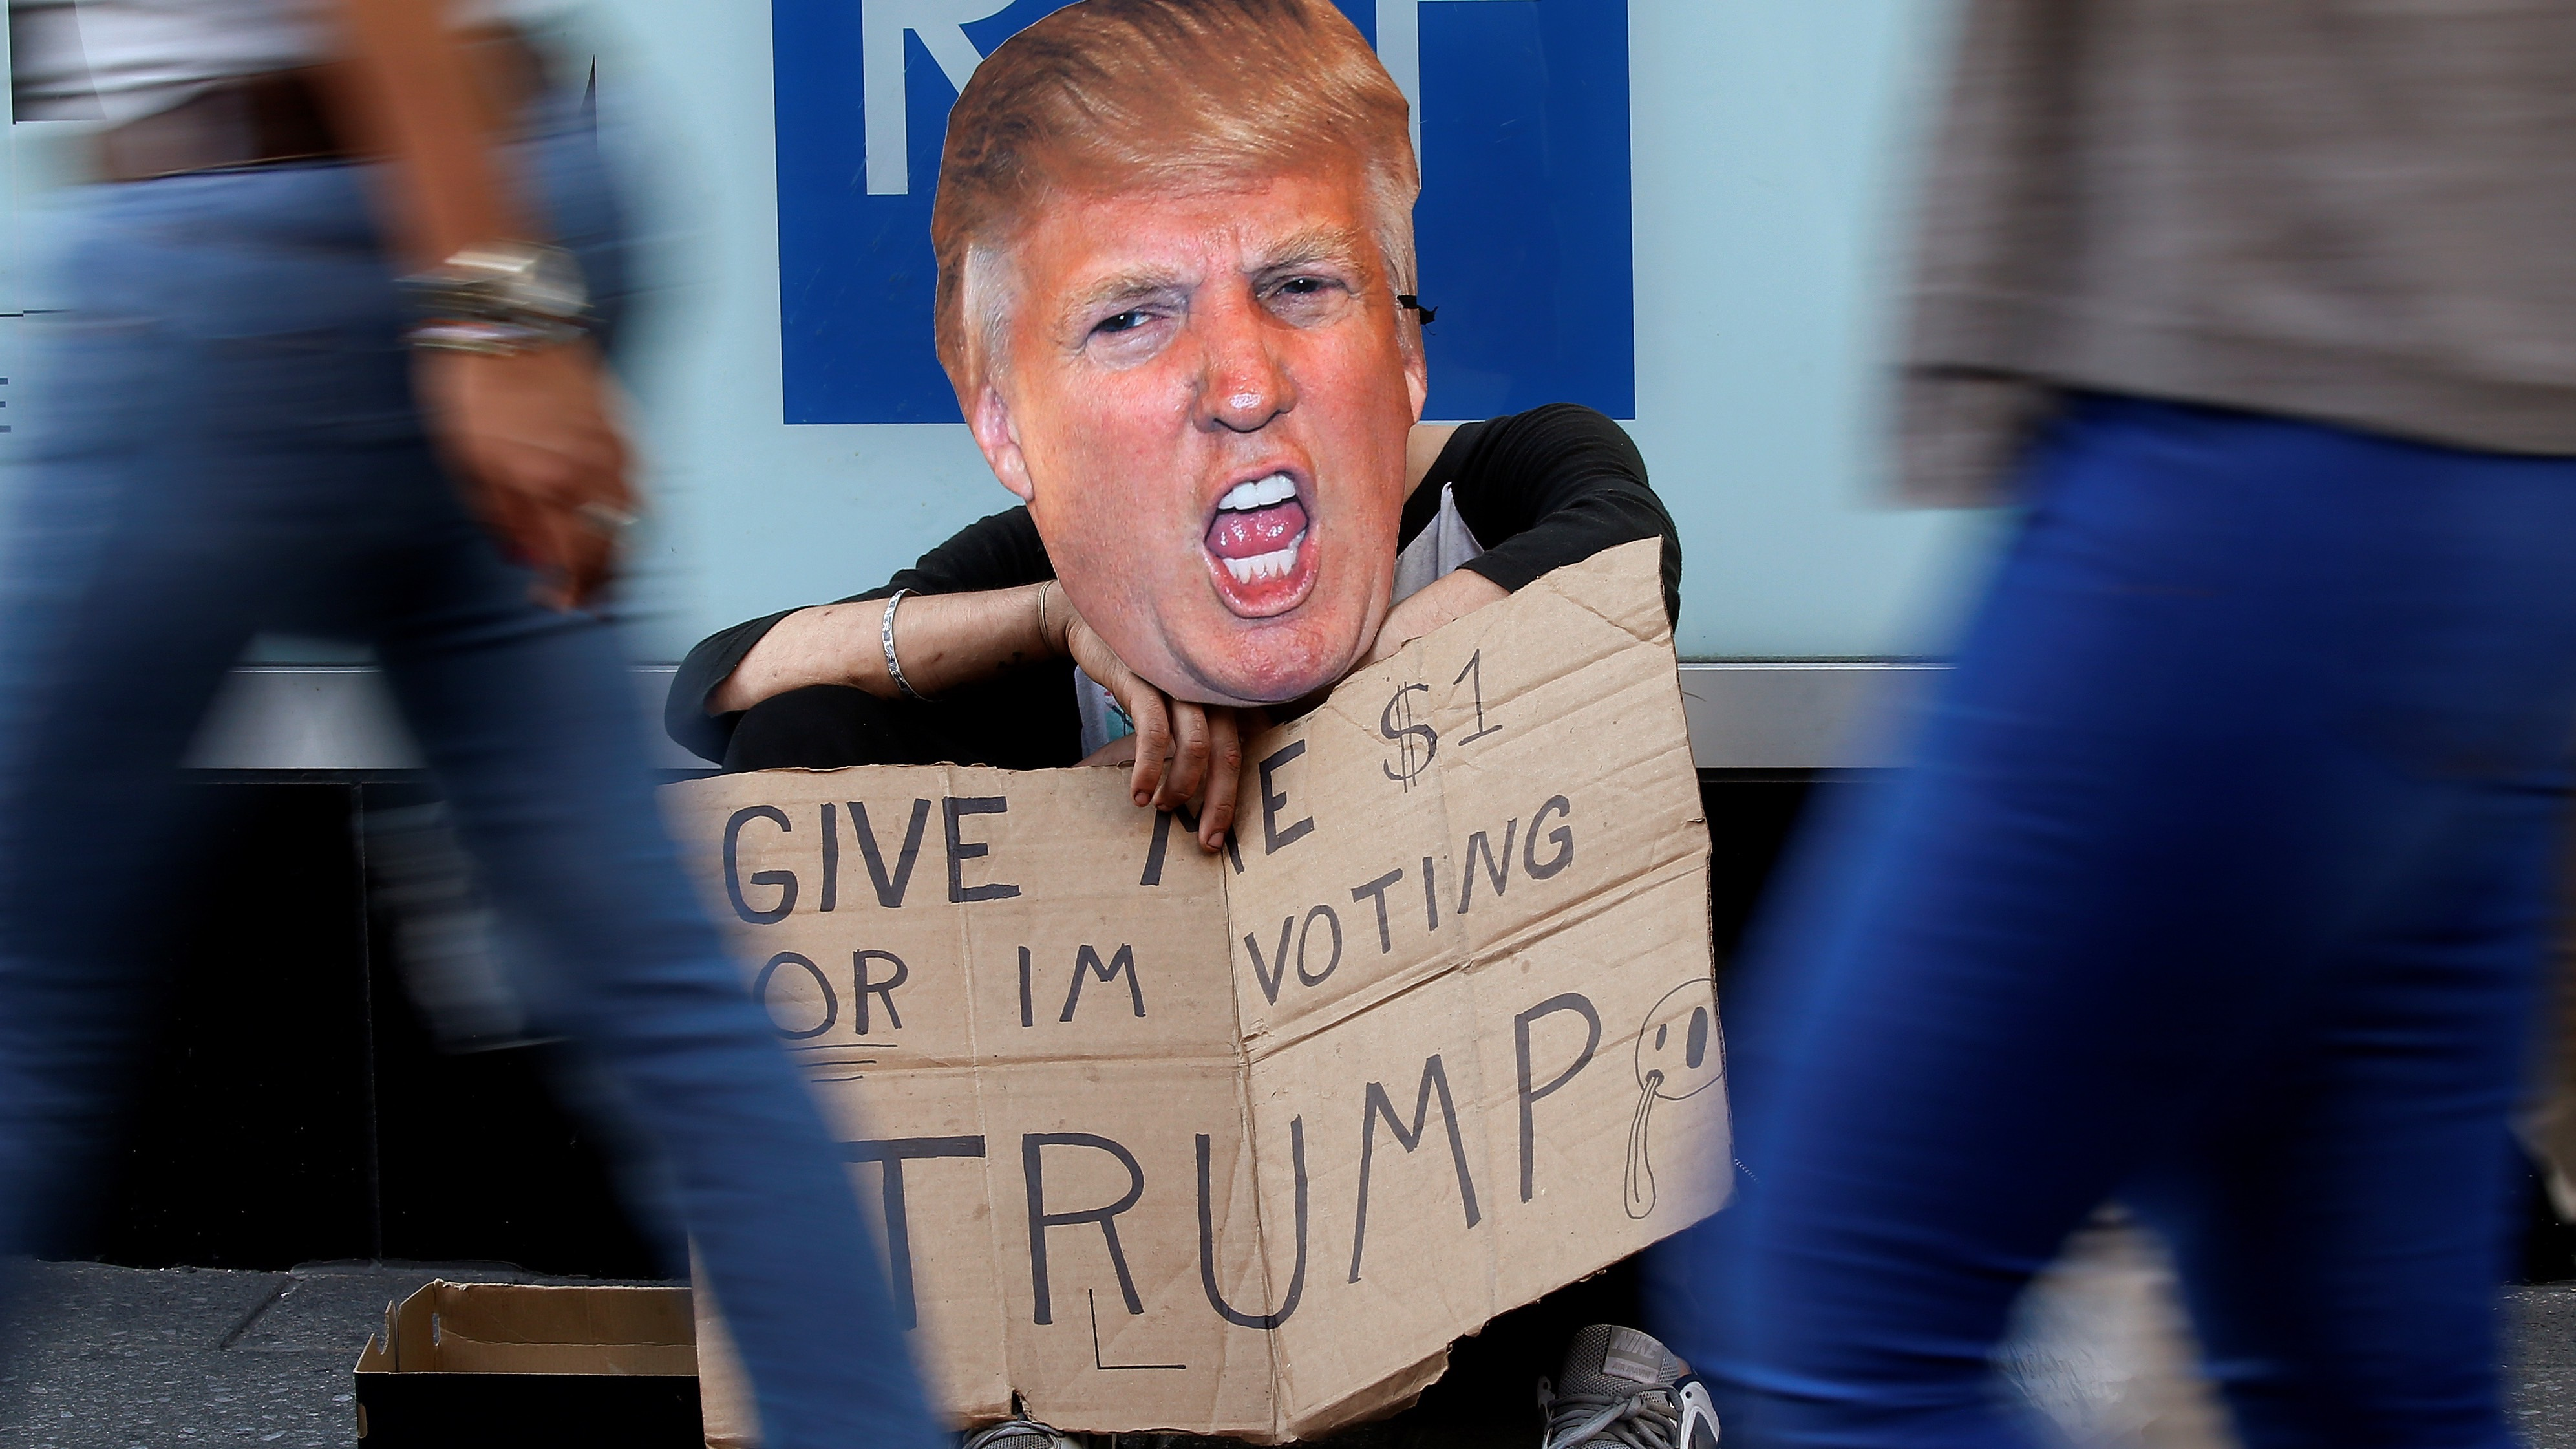 """A pan handler sits with a """"Give me $1 or Im voting for Trump"""" sign, referring to Republican presidential candidate Donald Trump, as he sits on the street in Times Square in the Manhattan borough of New York, New York, U.S., October 18, 2016.   REUTERS/Carlo Allegri     TPX IMAGES OF THE DAY      - RTX2PEYB"""